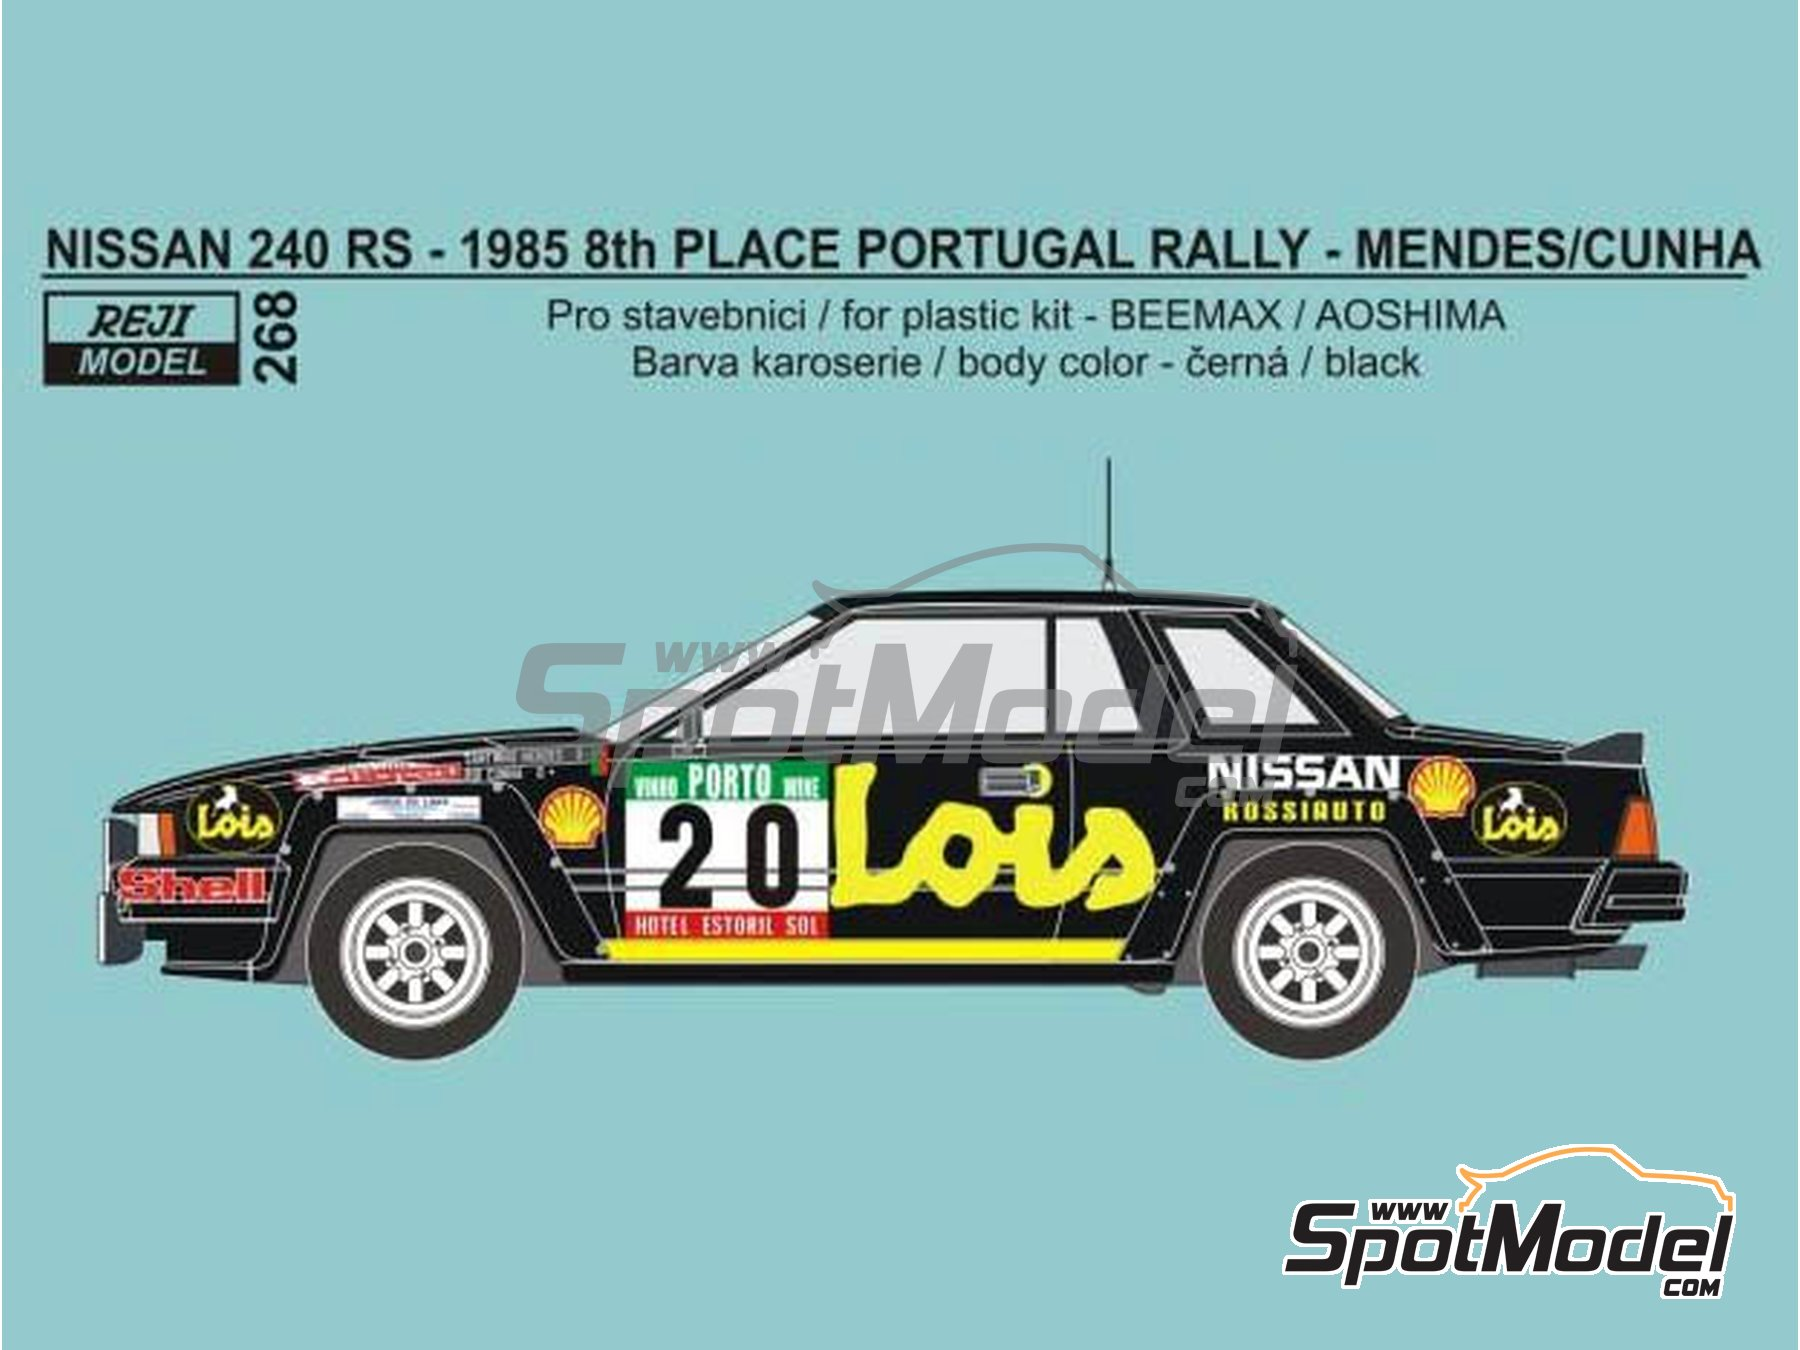 Image 1: Nissan 240 RS - Portugal Rally 1985 | Marking / livery in 1/24 scale manufactured by Reji Model (ref. REJI-268)